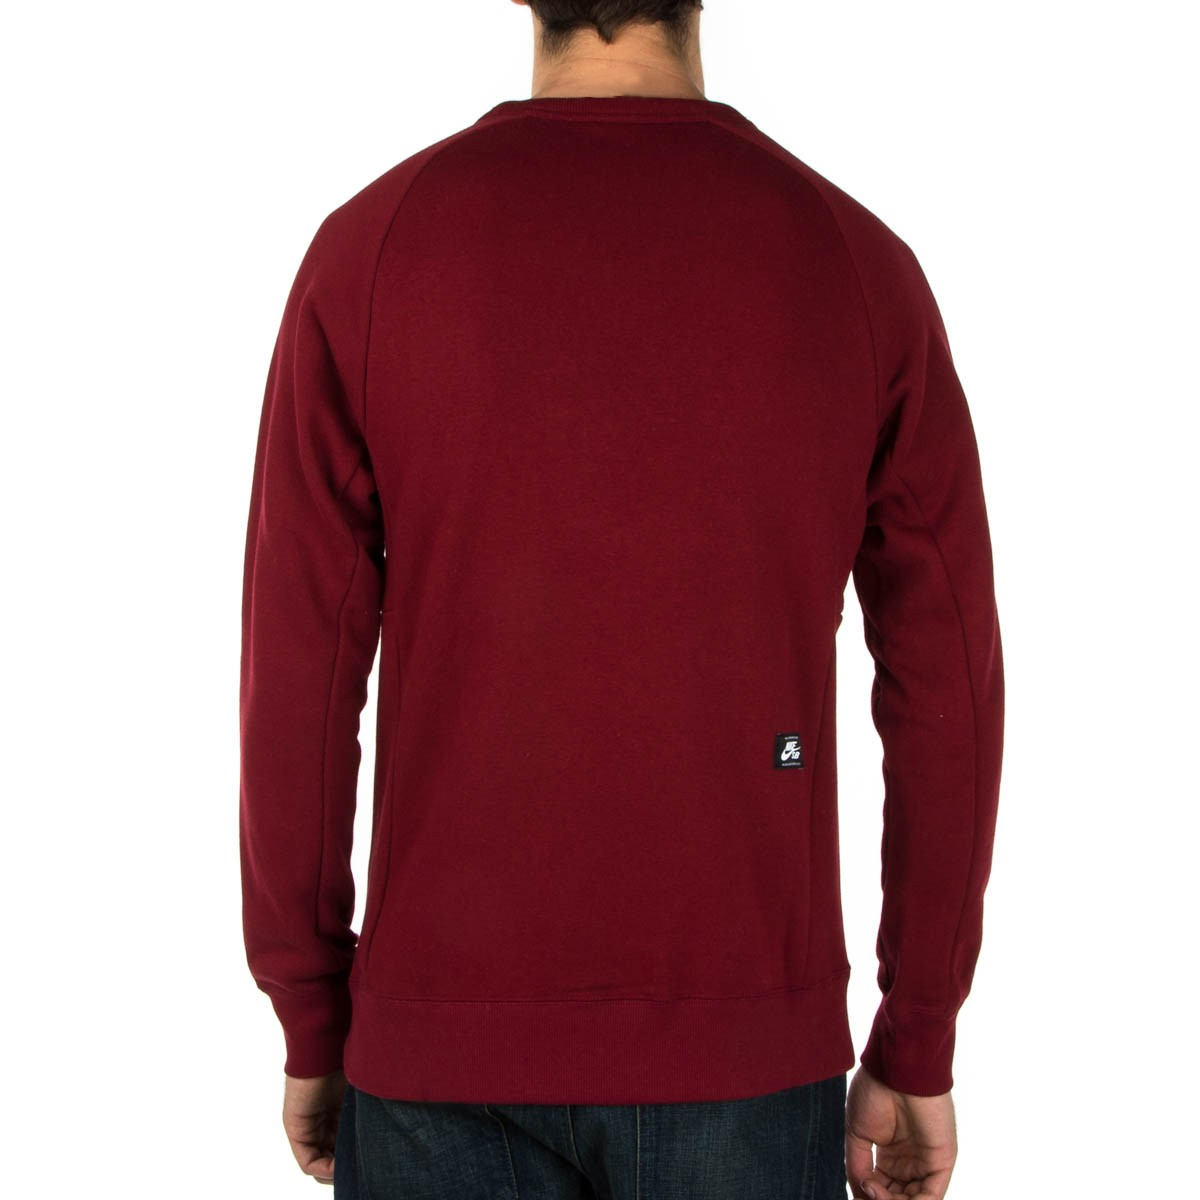 Nike Sb Icon Crew Fleece Sweatshirt Red Black